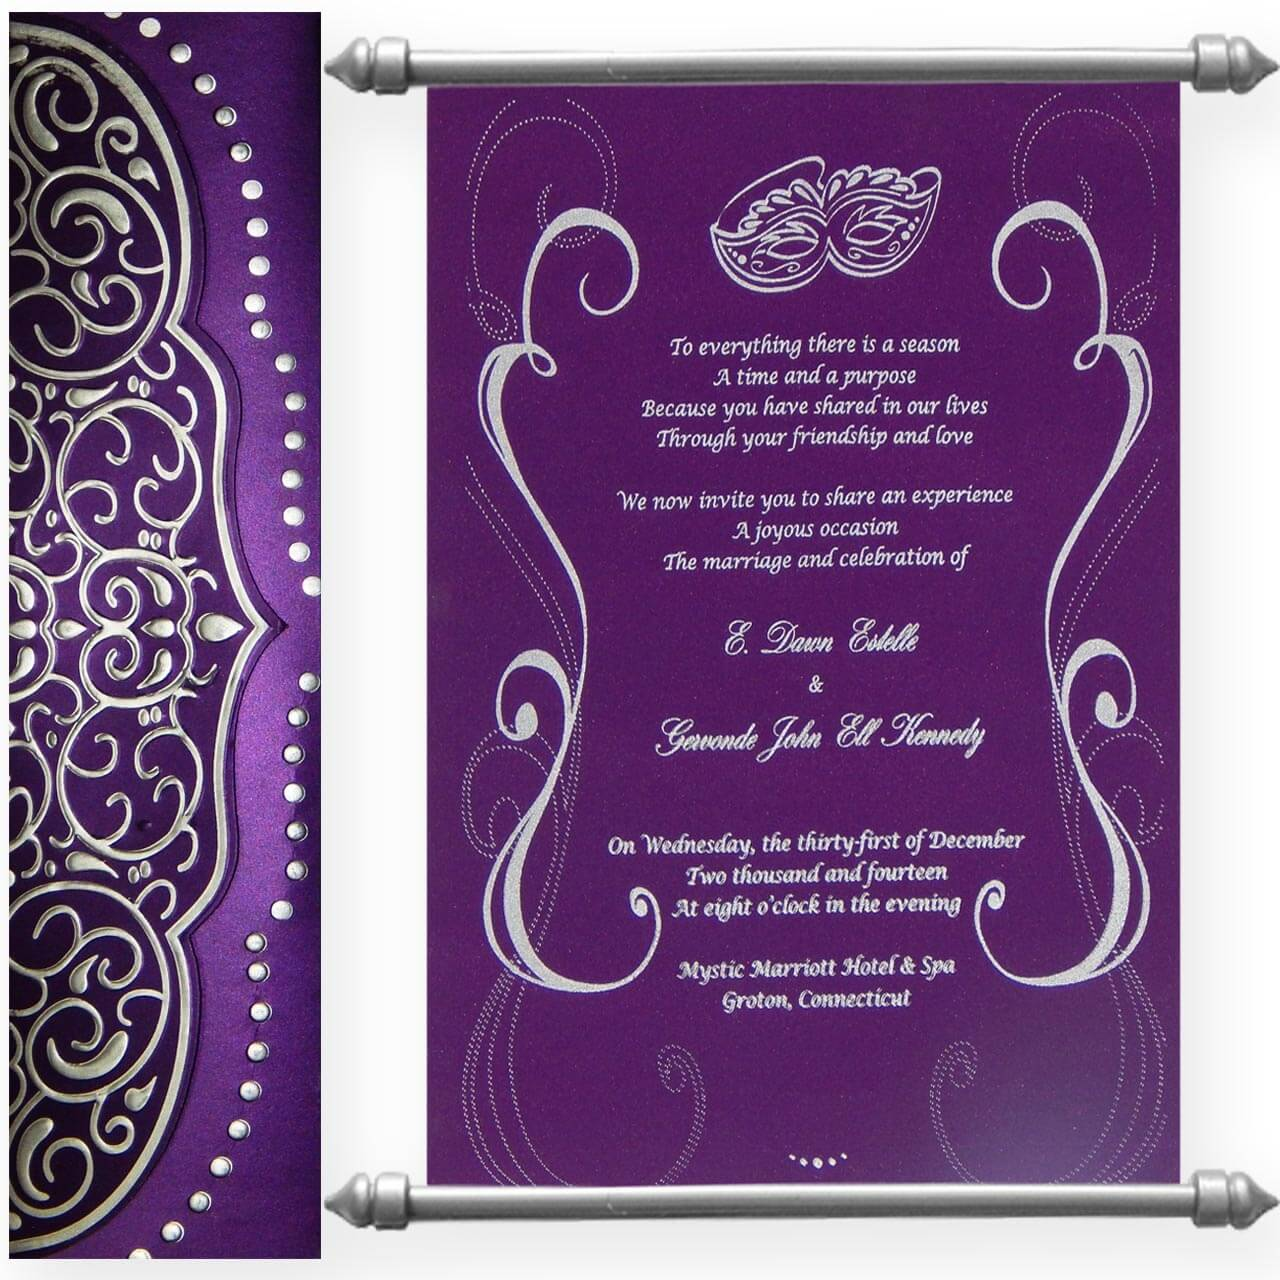 Order Invitation Cards Online